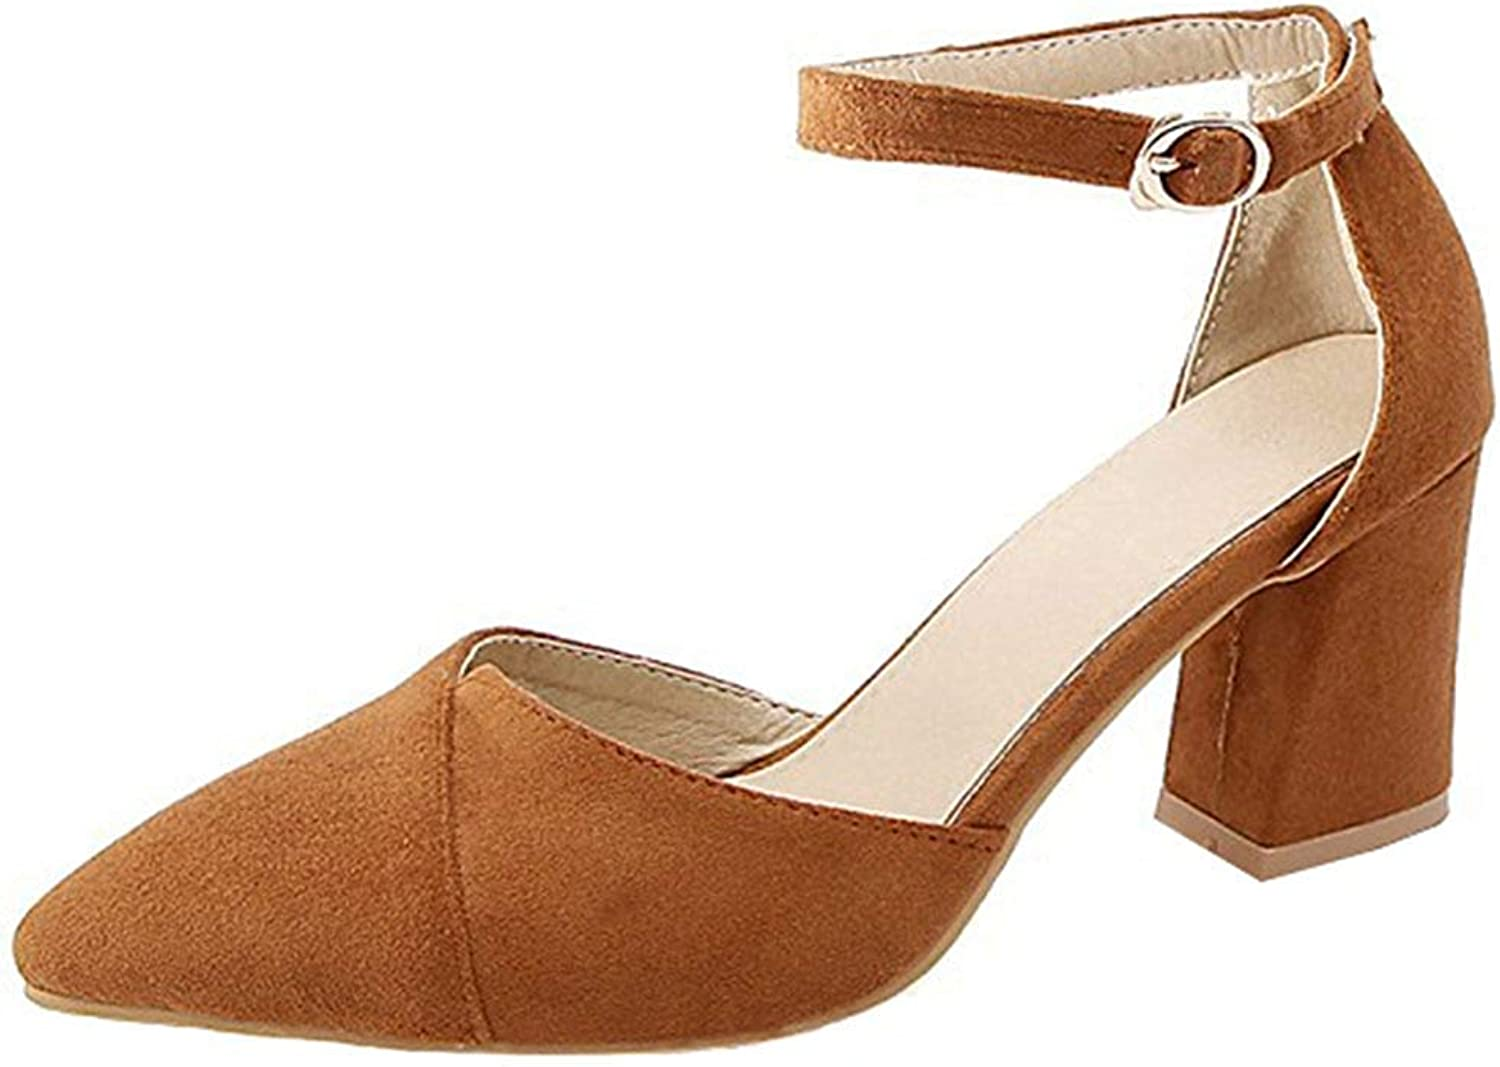 Gcanwea Women's Fashion Faux Suede Buckle Ankle Strap Pointed Toe Block High Heels Sandals No Grinding Feet Smart to Wear with Dress Comfortable for Girls for Woman Brown 7 M US Sandals